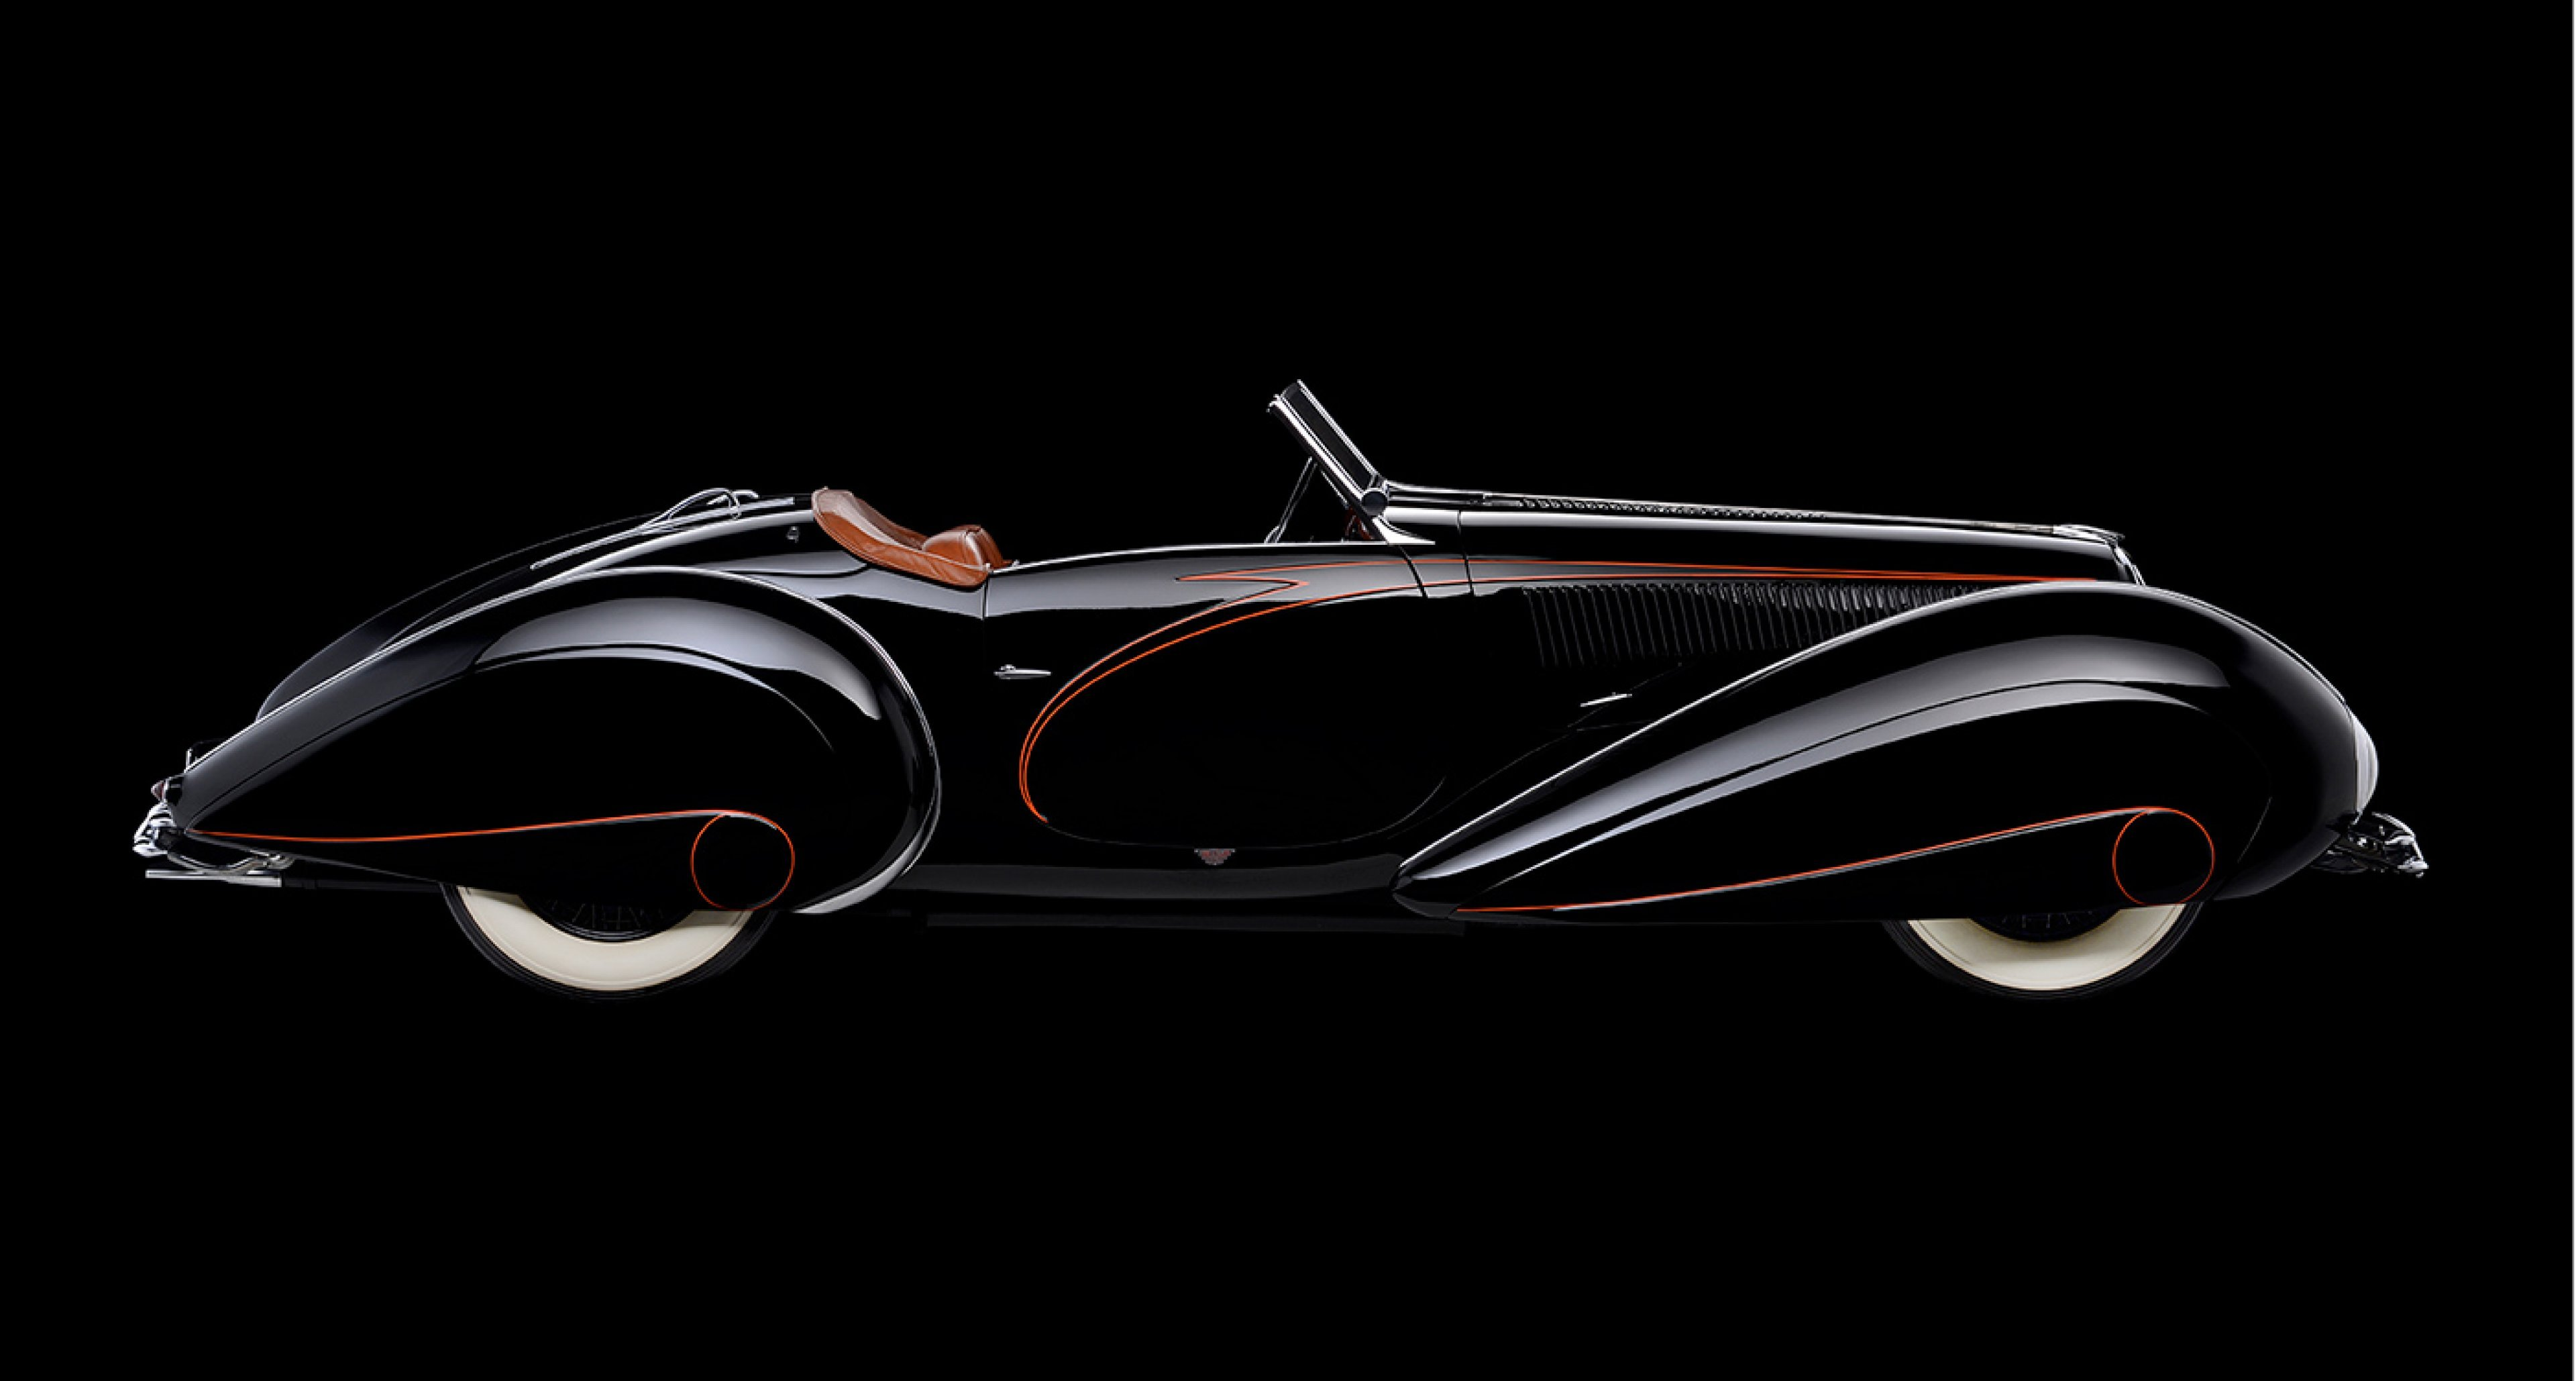 Delahaye 135MS Figoni Roadster, 1937, Collection of Margie and Robert E. Petersen; Photo © 2016 Scott Williamson, Photodesign Studios